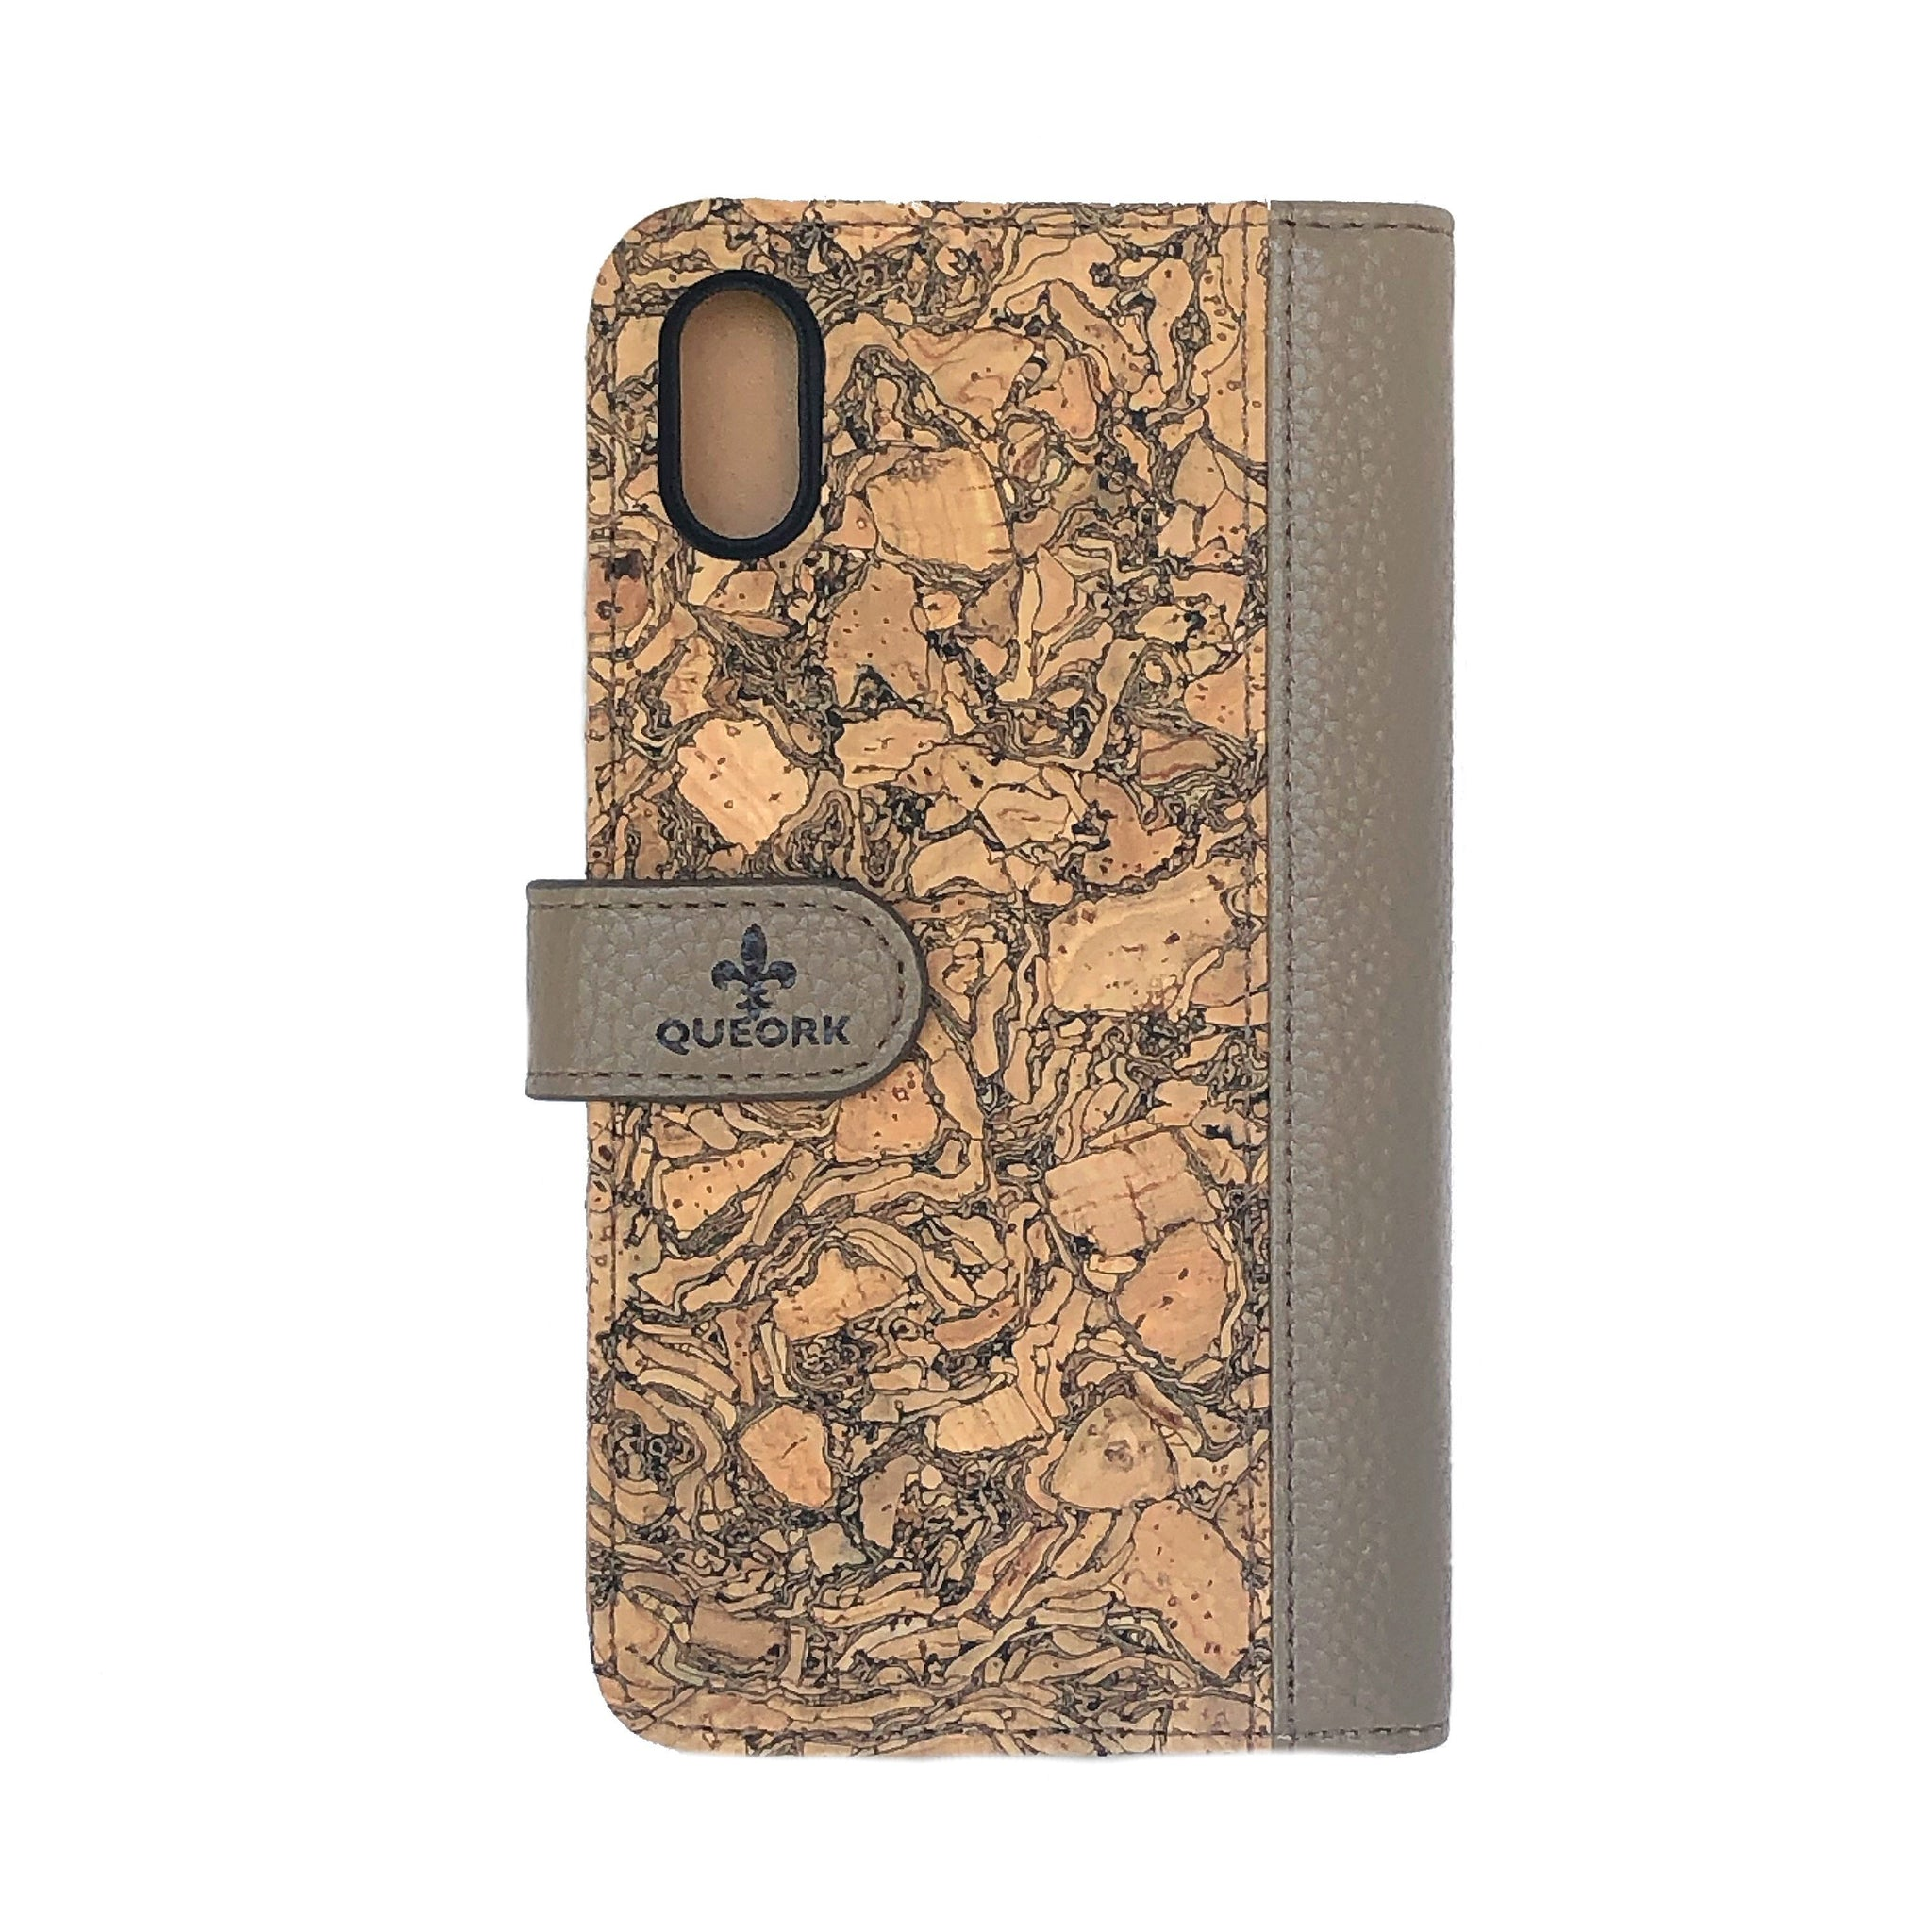 XS Max iPhone wallet case